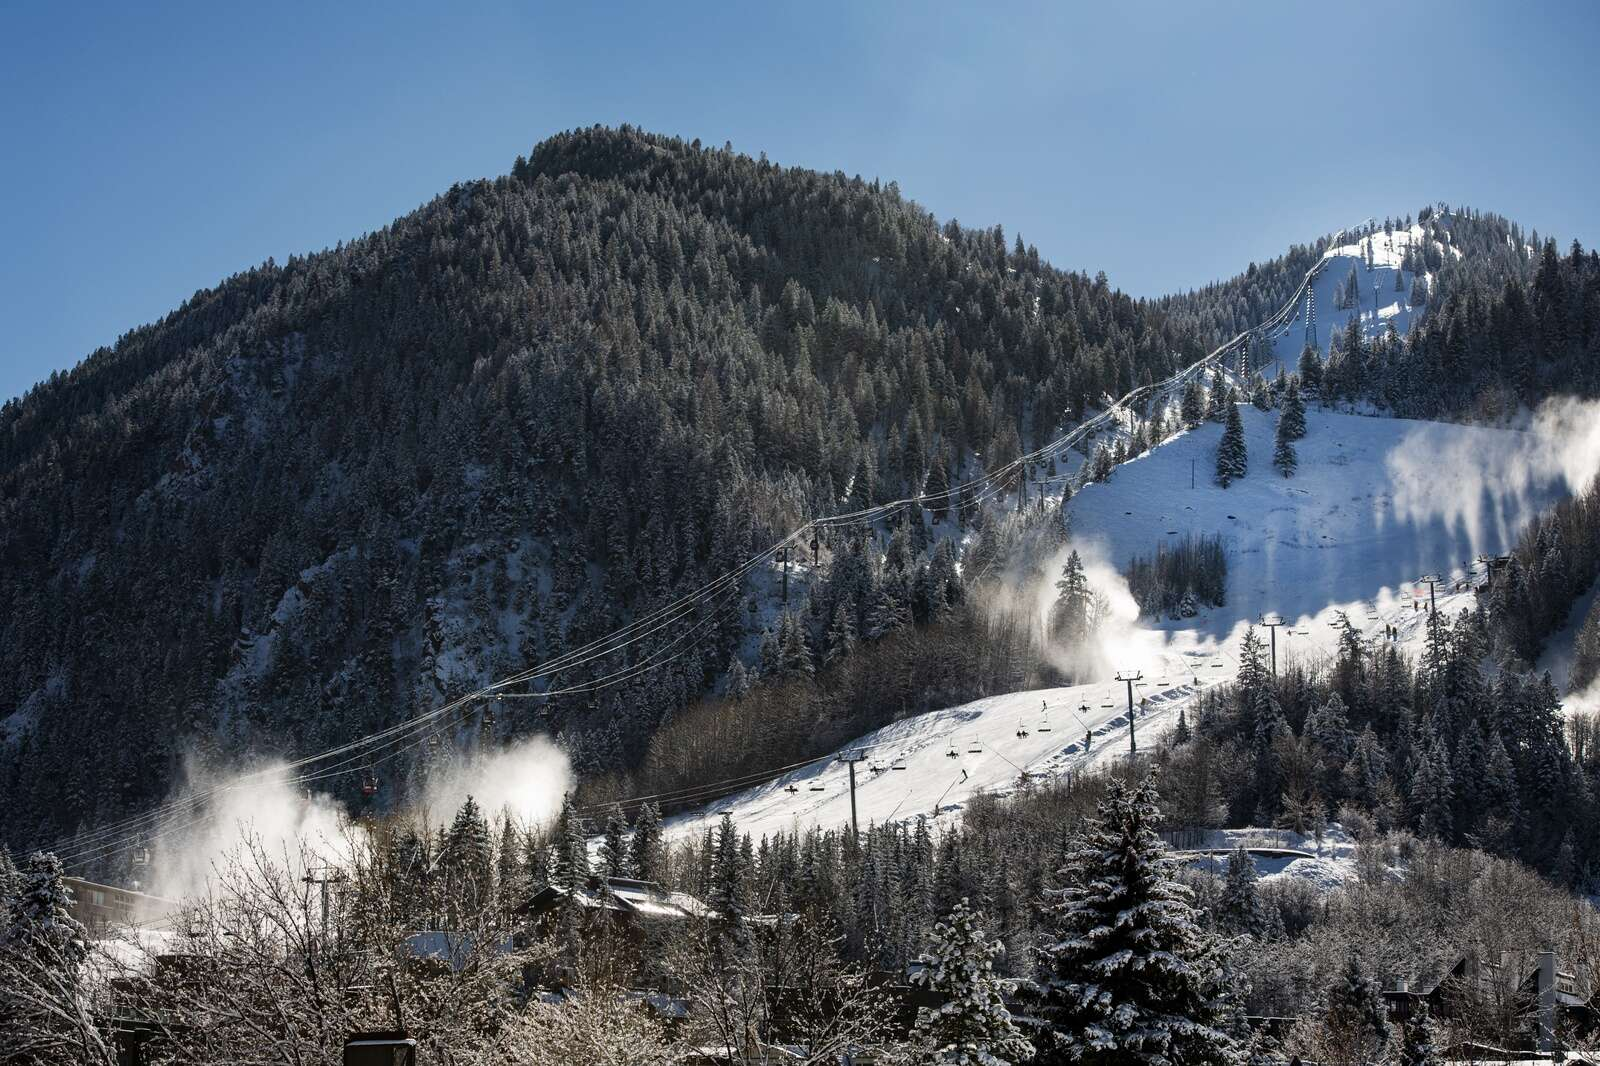 Snowmakers blow snow onto the Little Nell run as people make their way down Aspen Mountain on opening day on Wednesday, Nov. 25, 2020. (Kelsey Brunner/The Aspen Times)